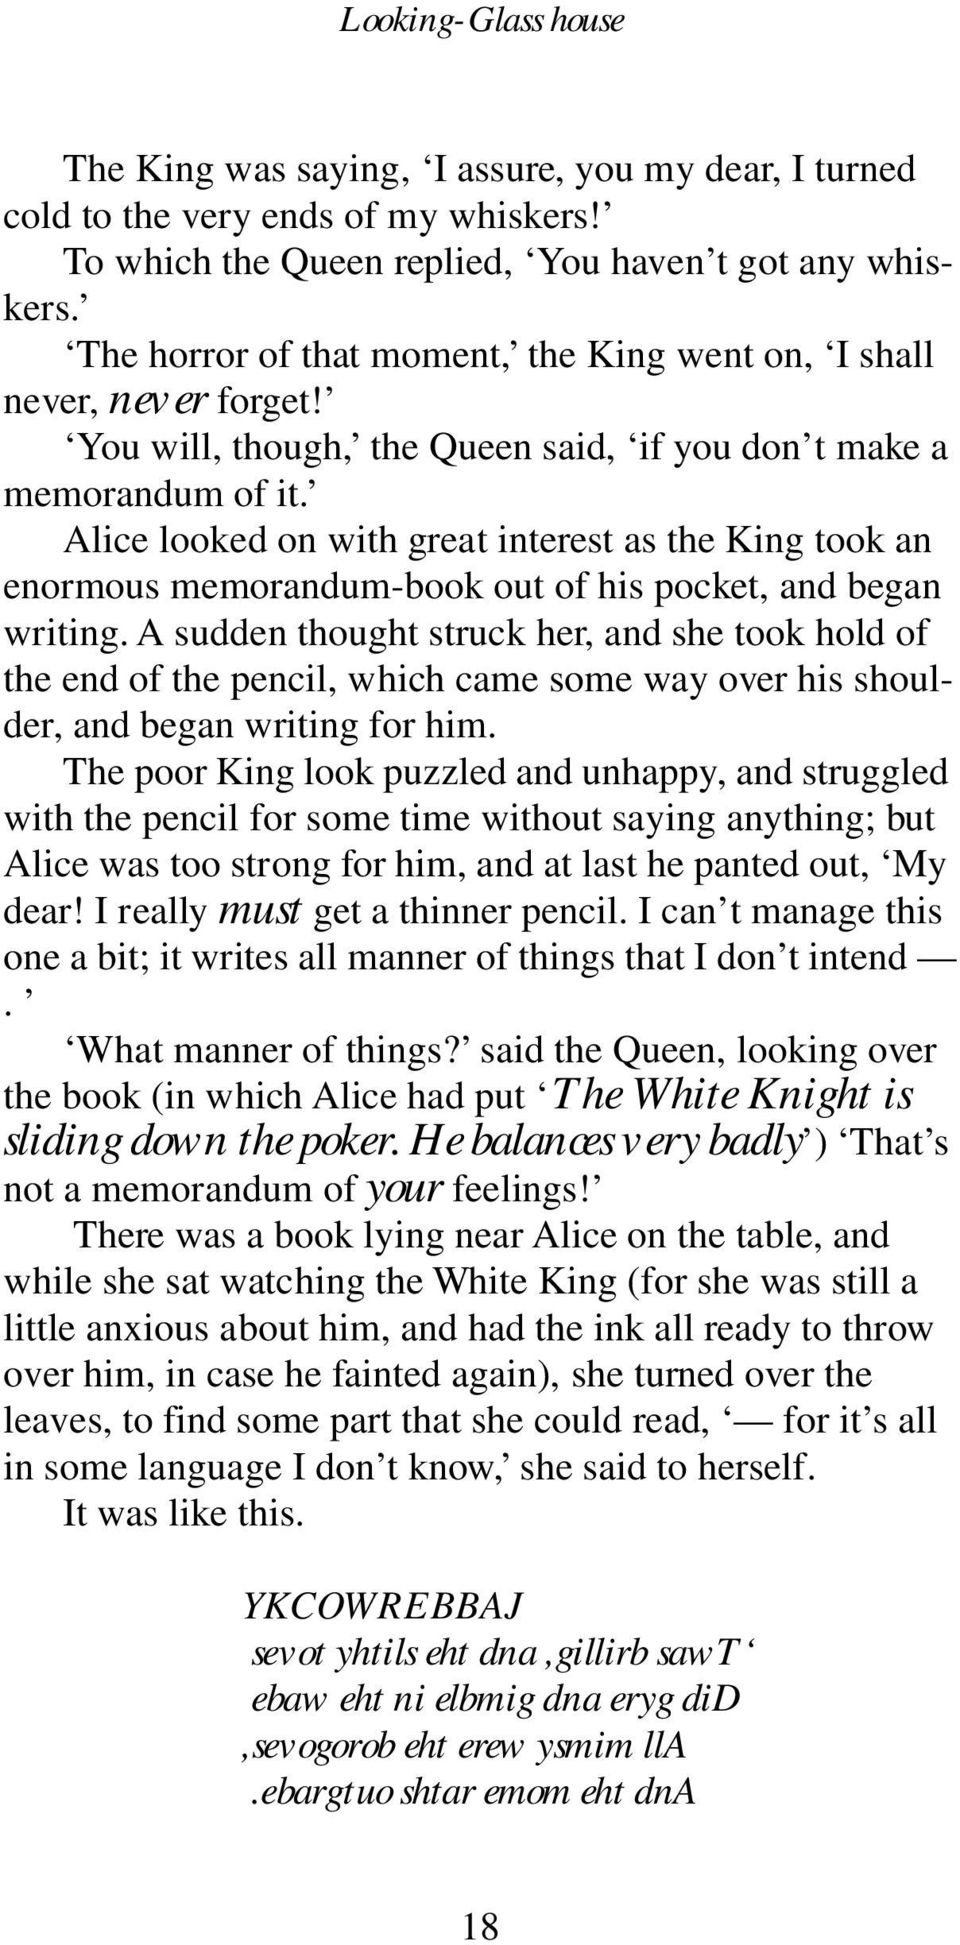 Alice looked on with great interest as the King took an enormous memorandum-book out of his pocket, and began writing.